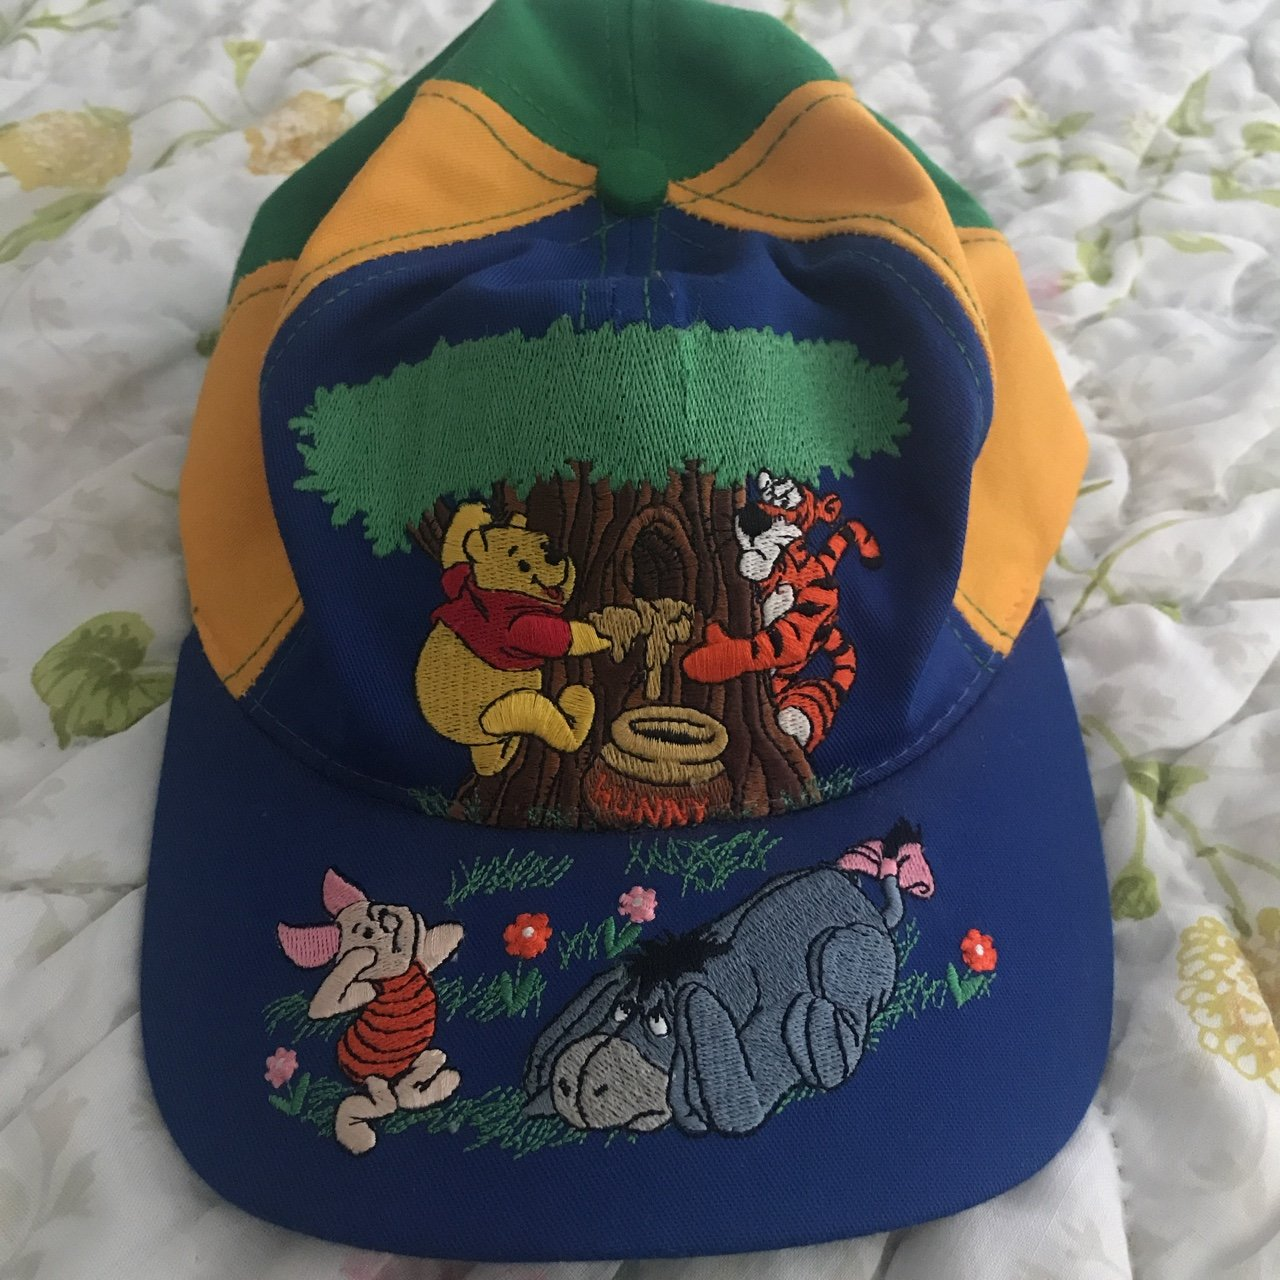 194869b8a67 Winnie the Pooh colorful baseball cap from goofys hat size - Depop